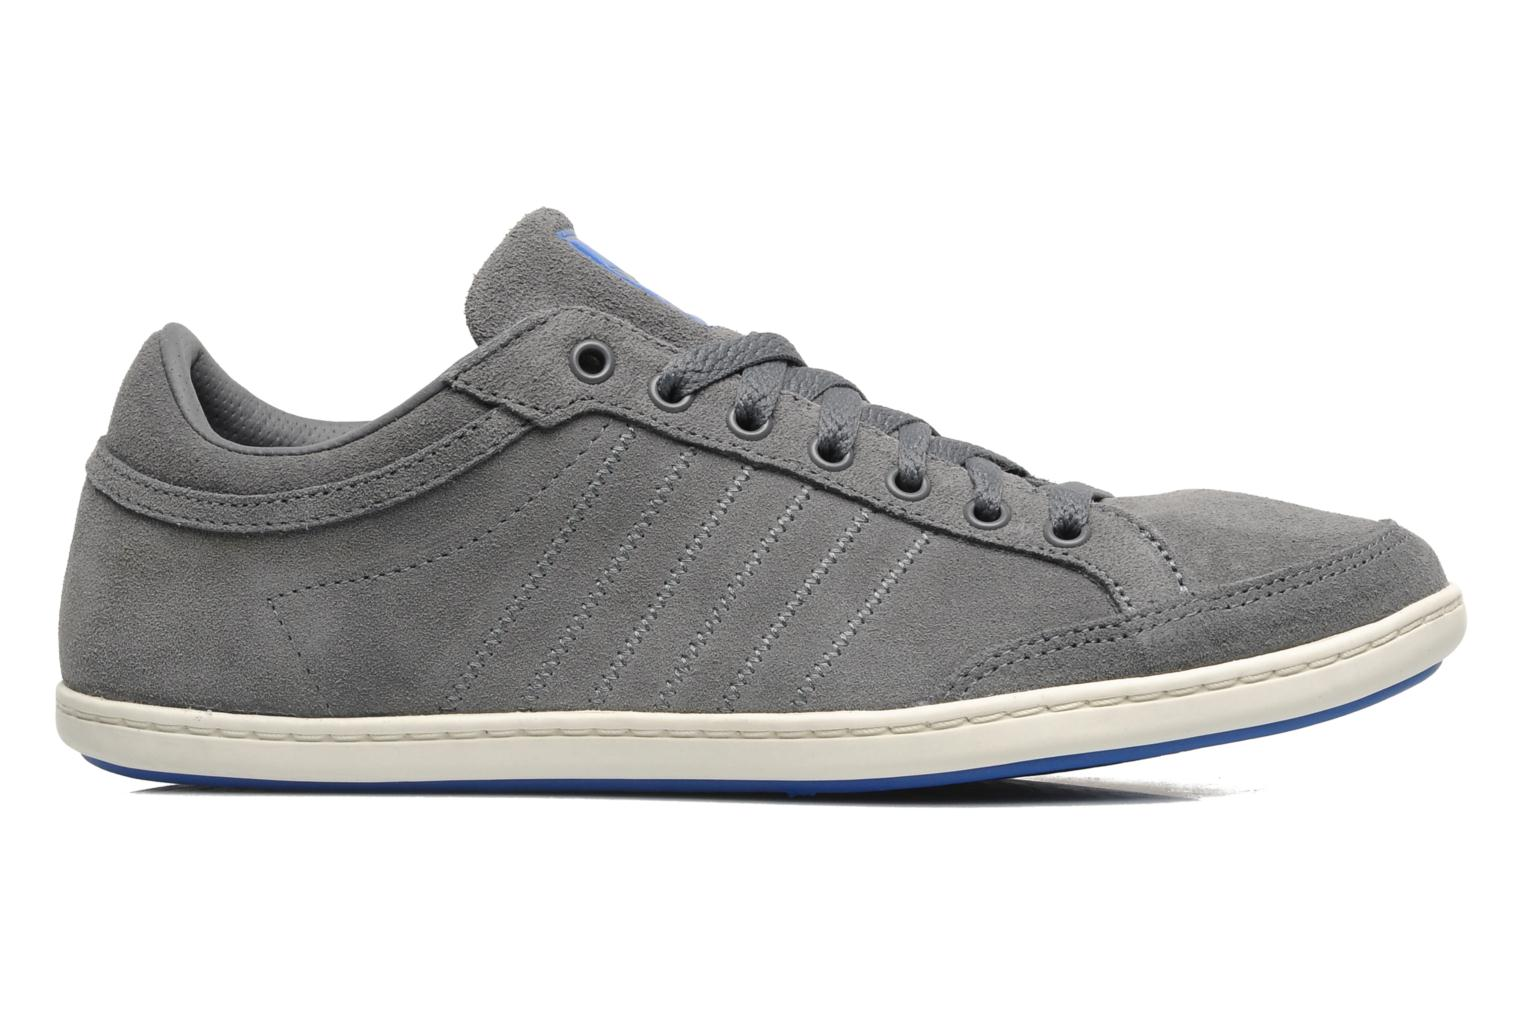 Adidas Originals Plimcana Clean Low Trainers in Grey at ...